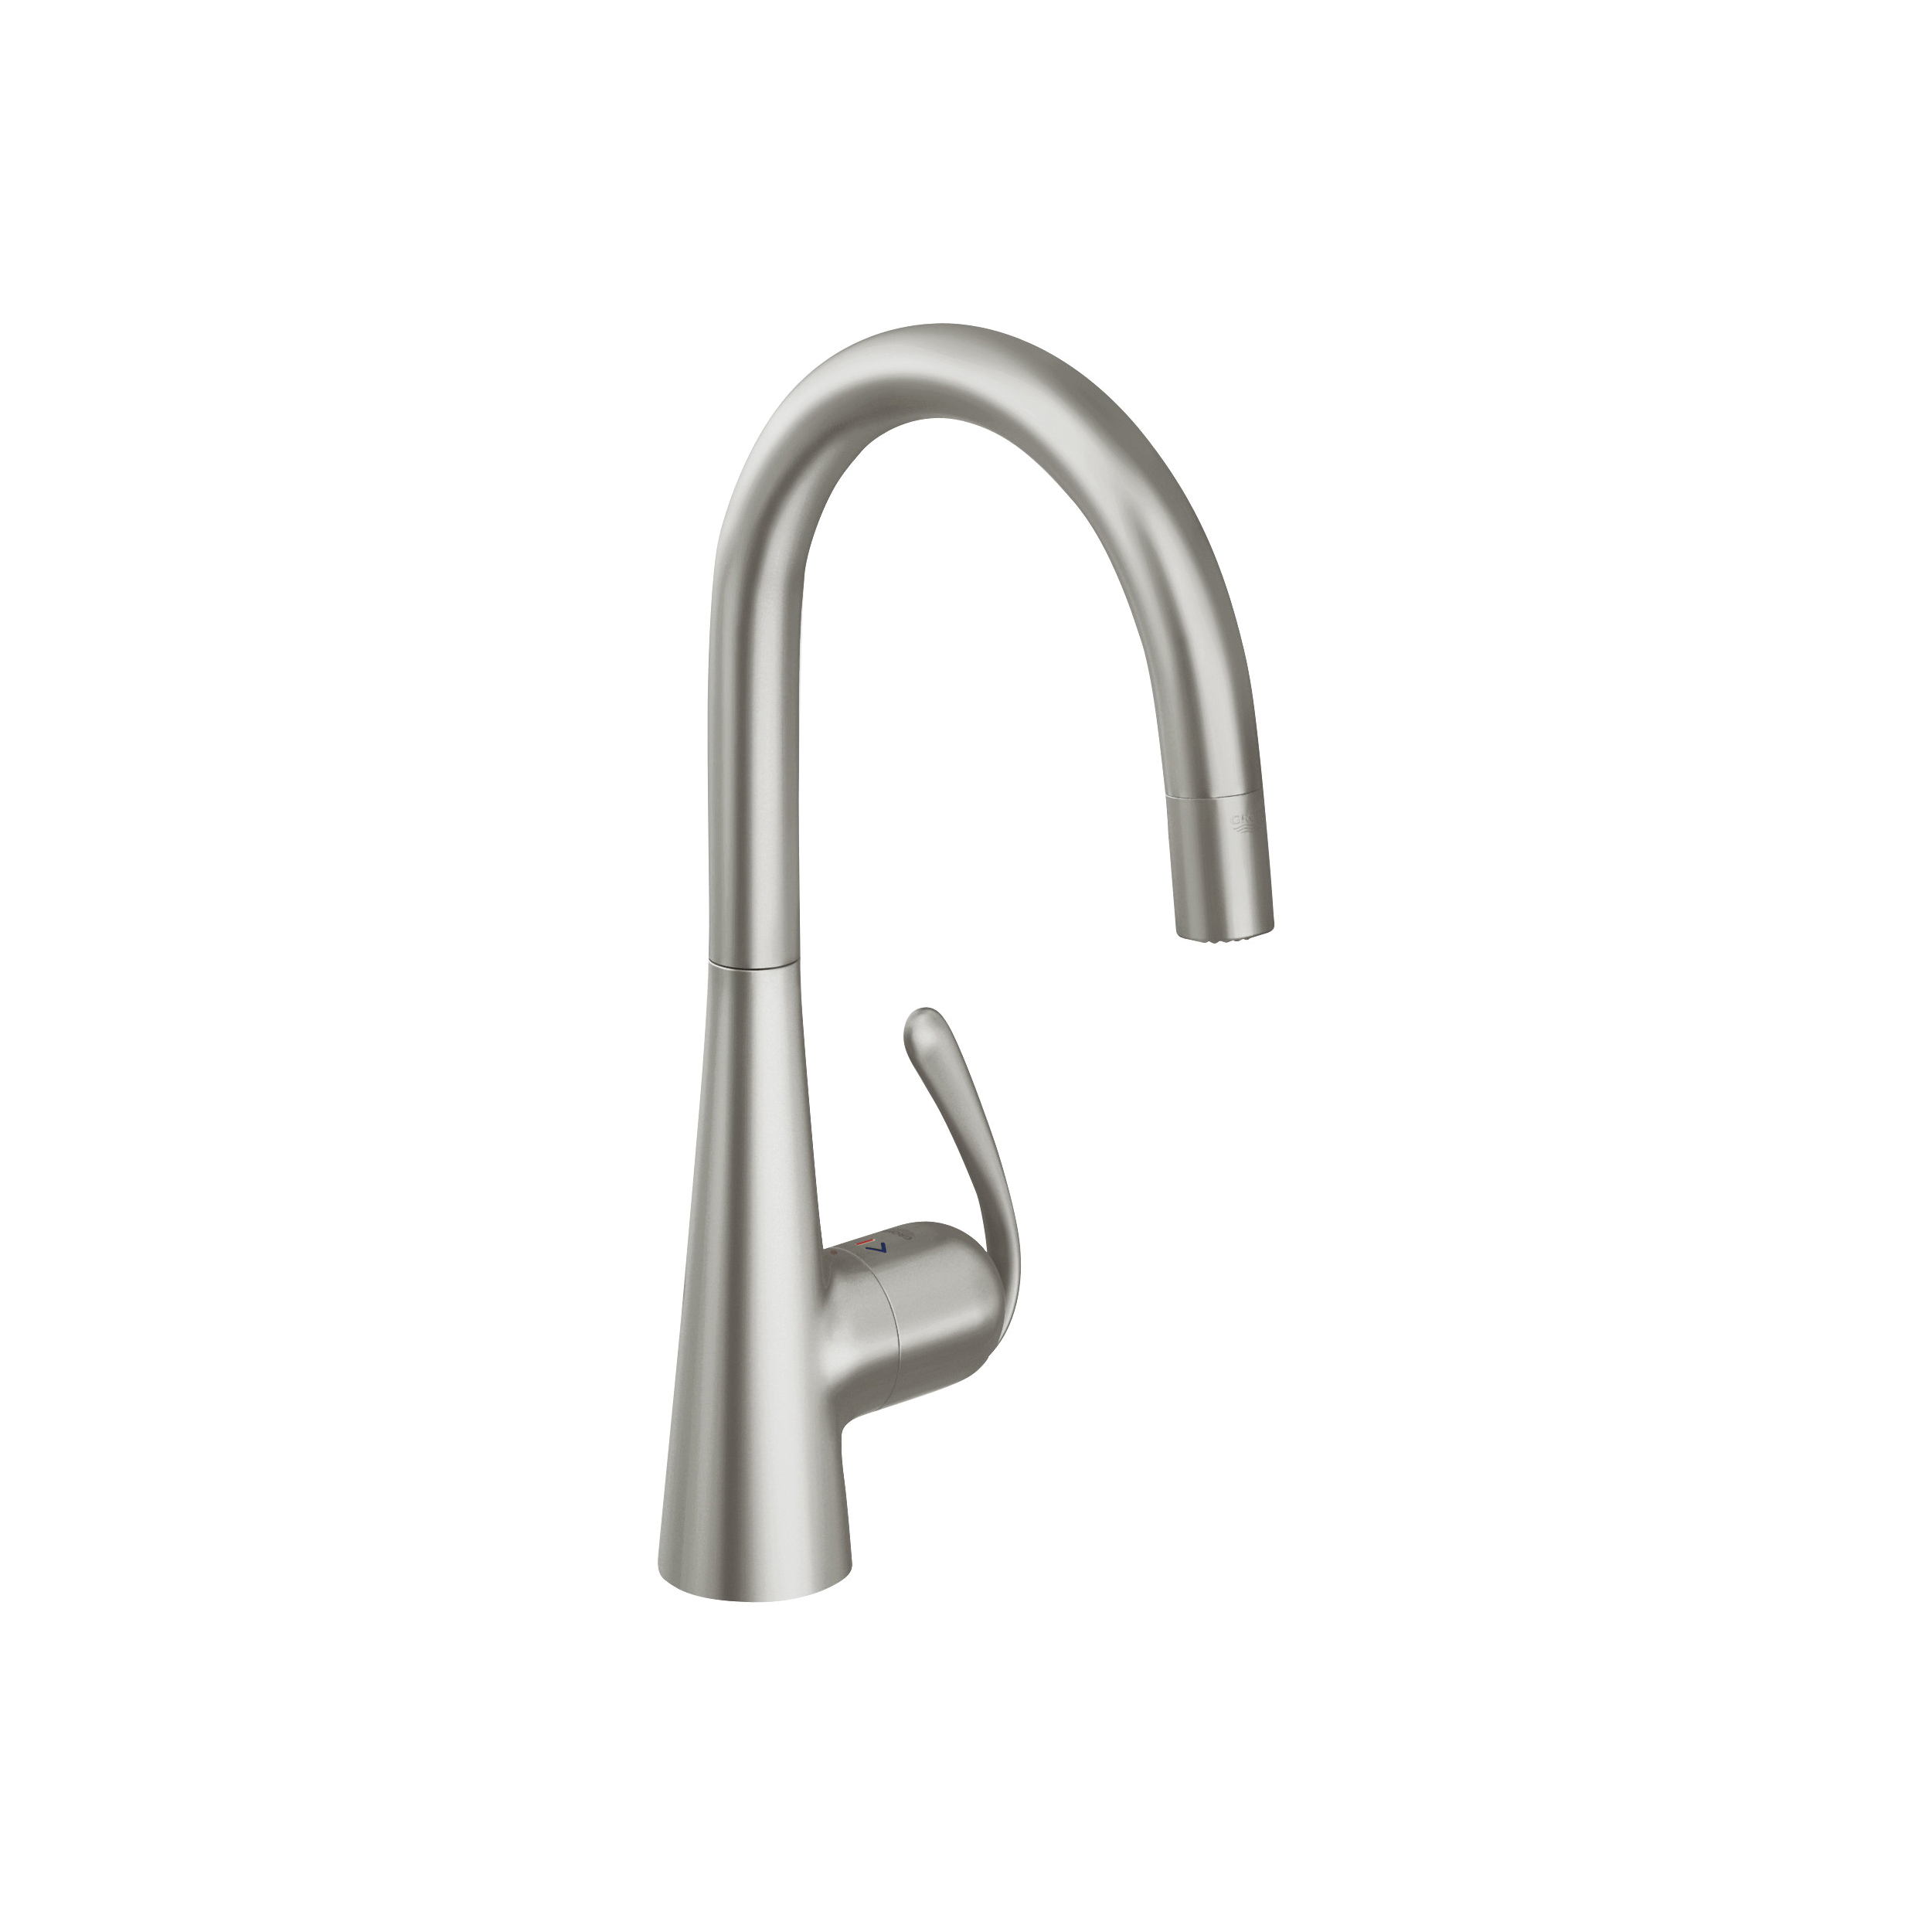 GROHE 32226DC0 Ladylux3 Pro Sink Mixer, 1.75 gpm, 1 Handle, SuperSteel, Import